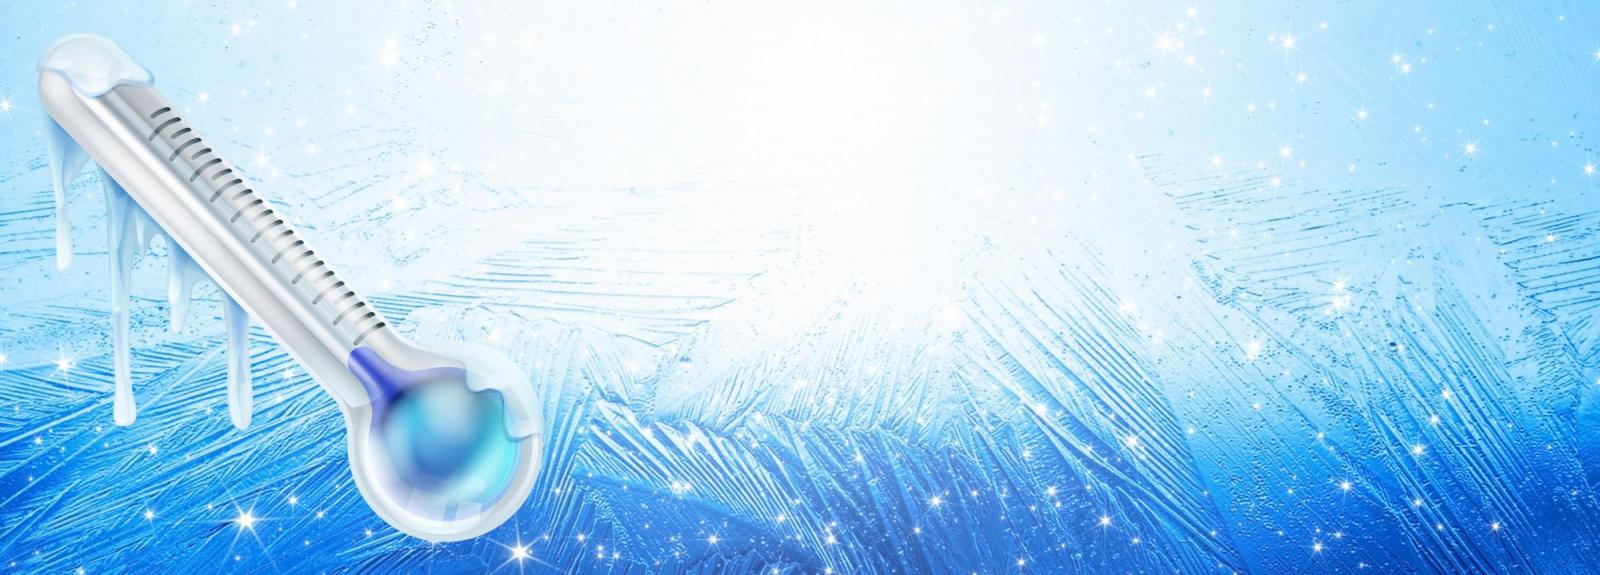 Icy Thermometer on Icy Background